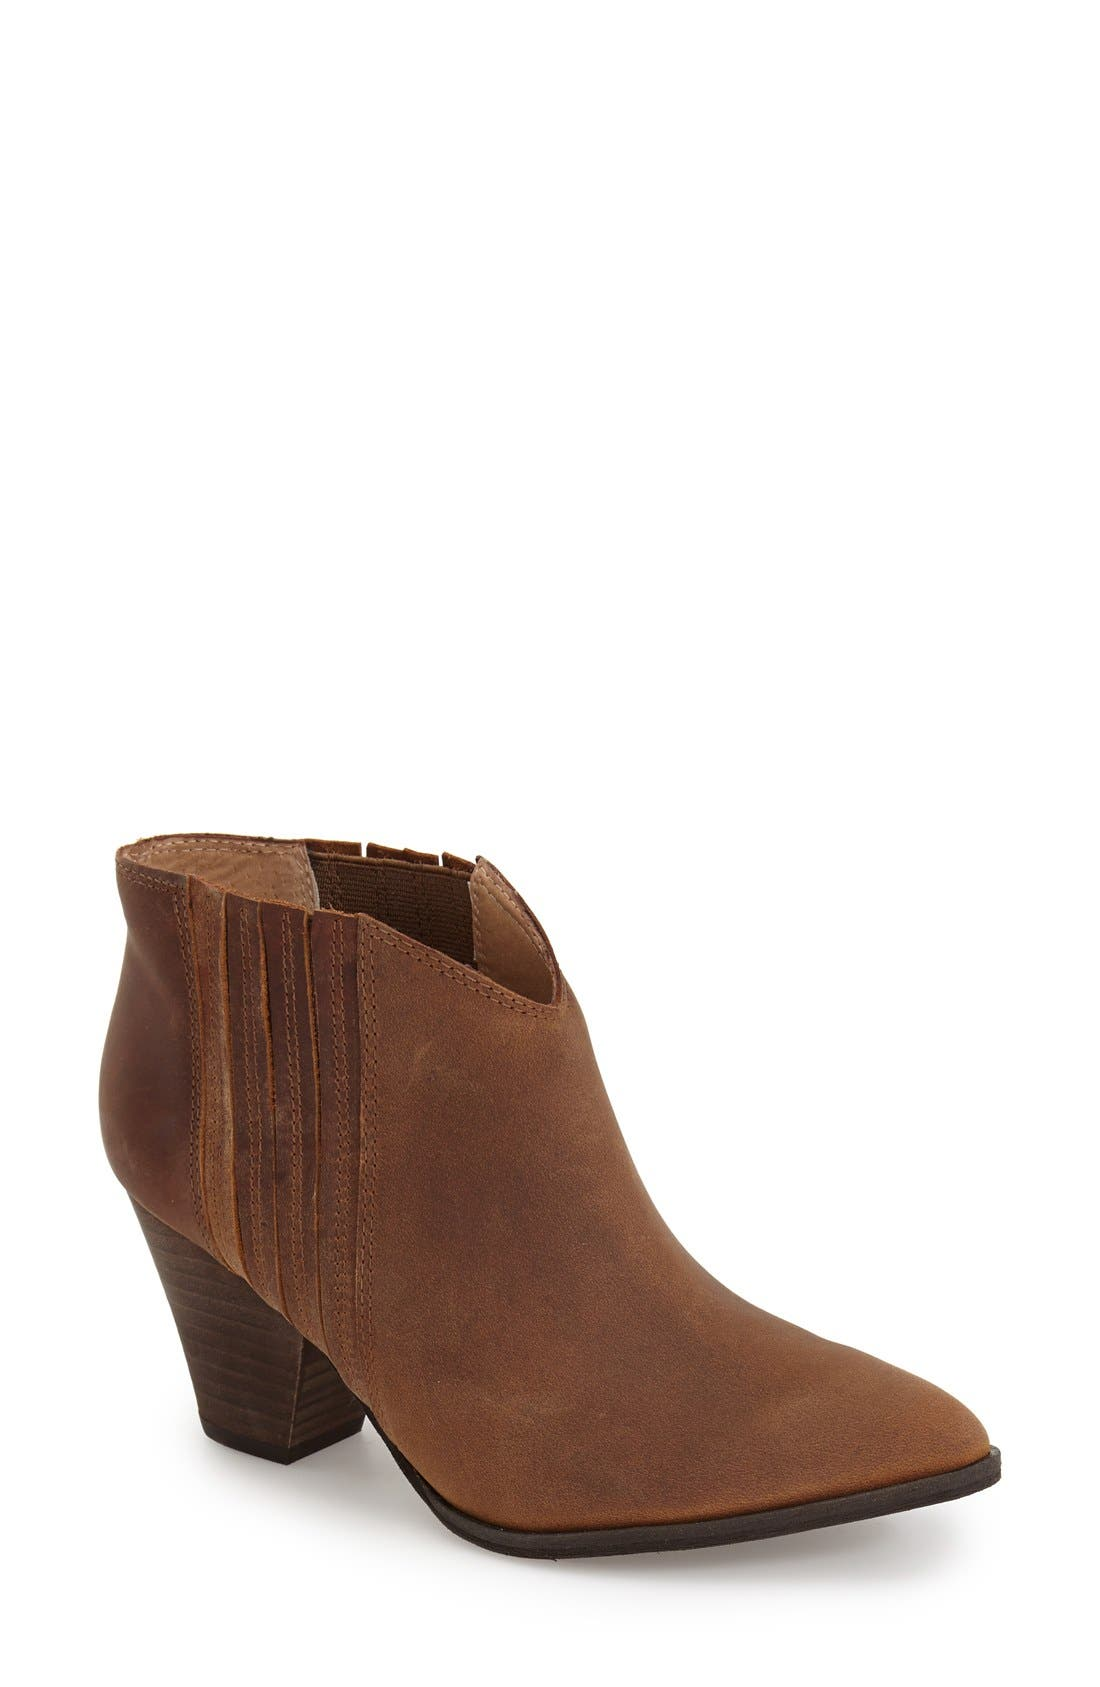 'Addie' Pointy Toe Ankle Bootie,                             Main thumbnail 4, color,